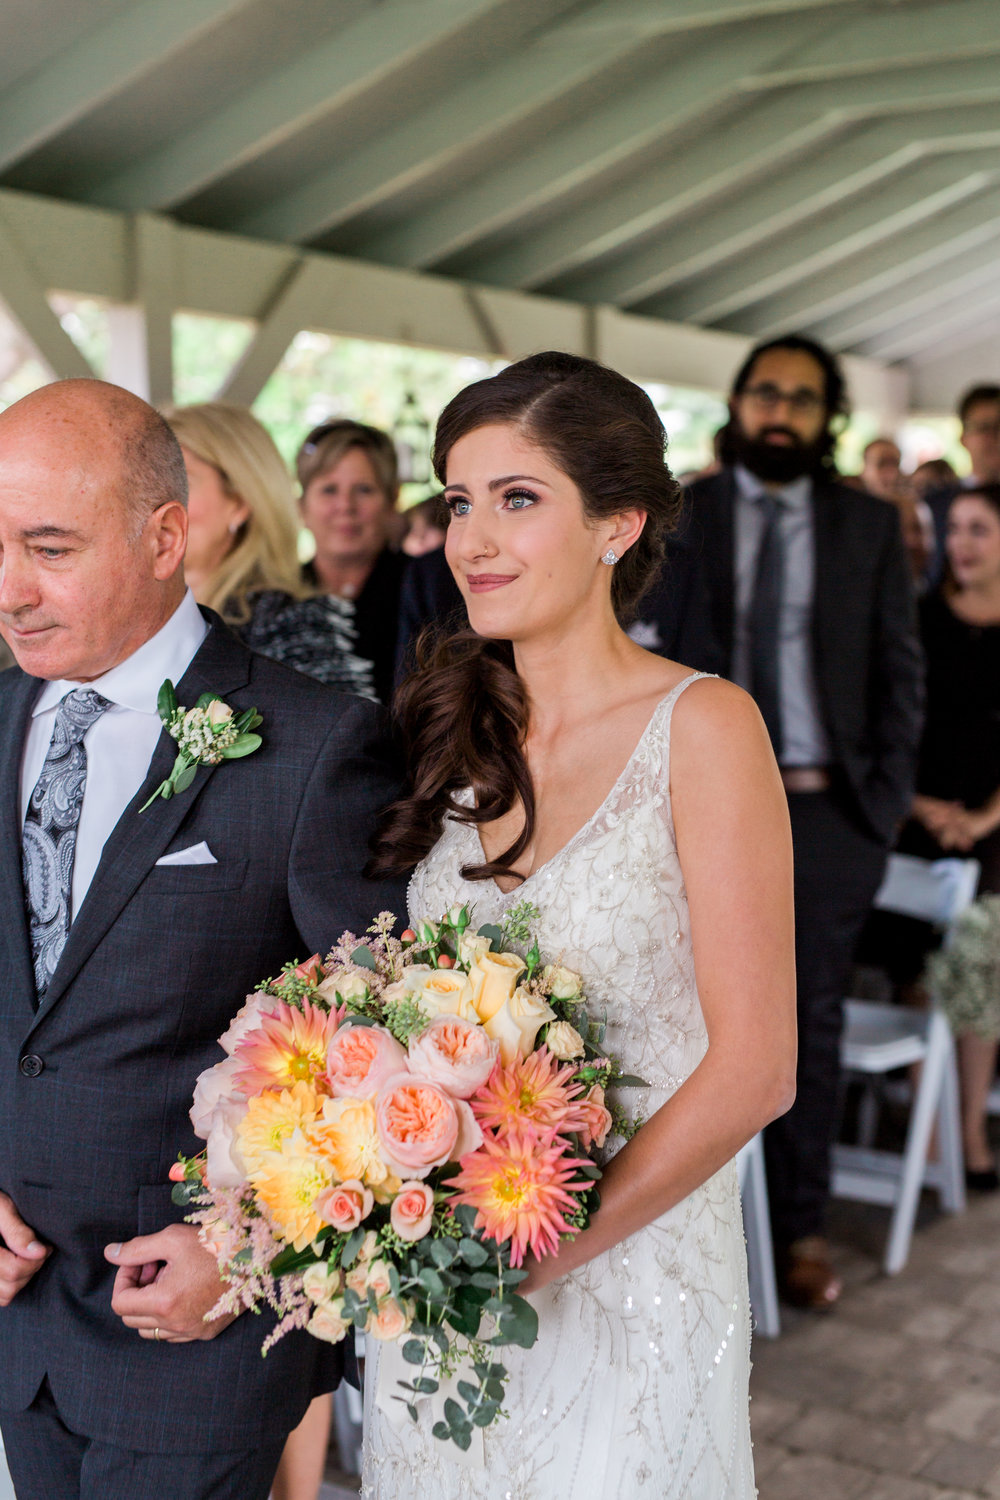 Amir-Golbazi-Danielle-Giroux-Photography_Toronto-Wedding_Cedarwood_Rachel-Paul_170.jpg